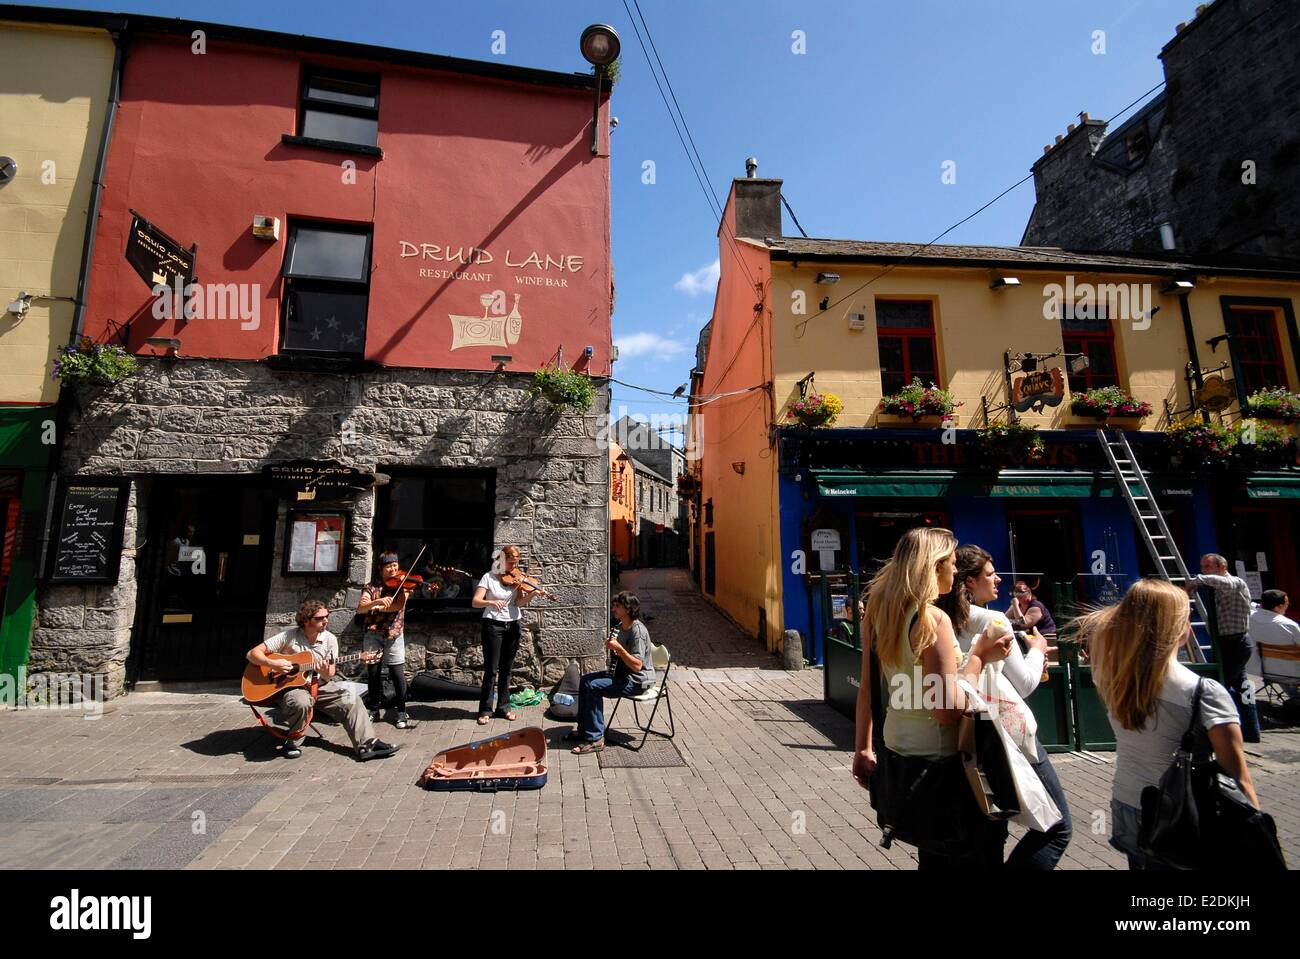 Ireland County Galway Galway pedestrian street with colorful houses street musicians - Stock Image